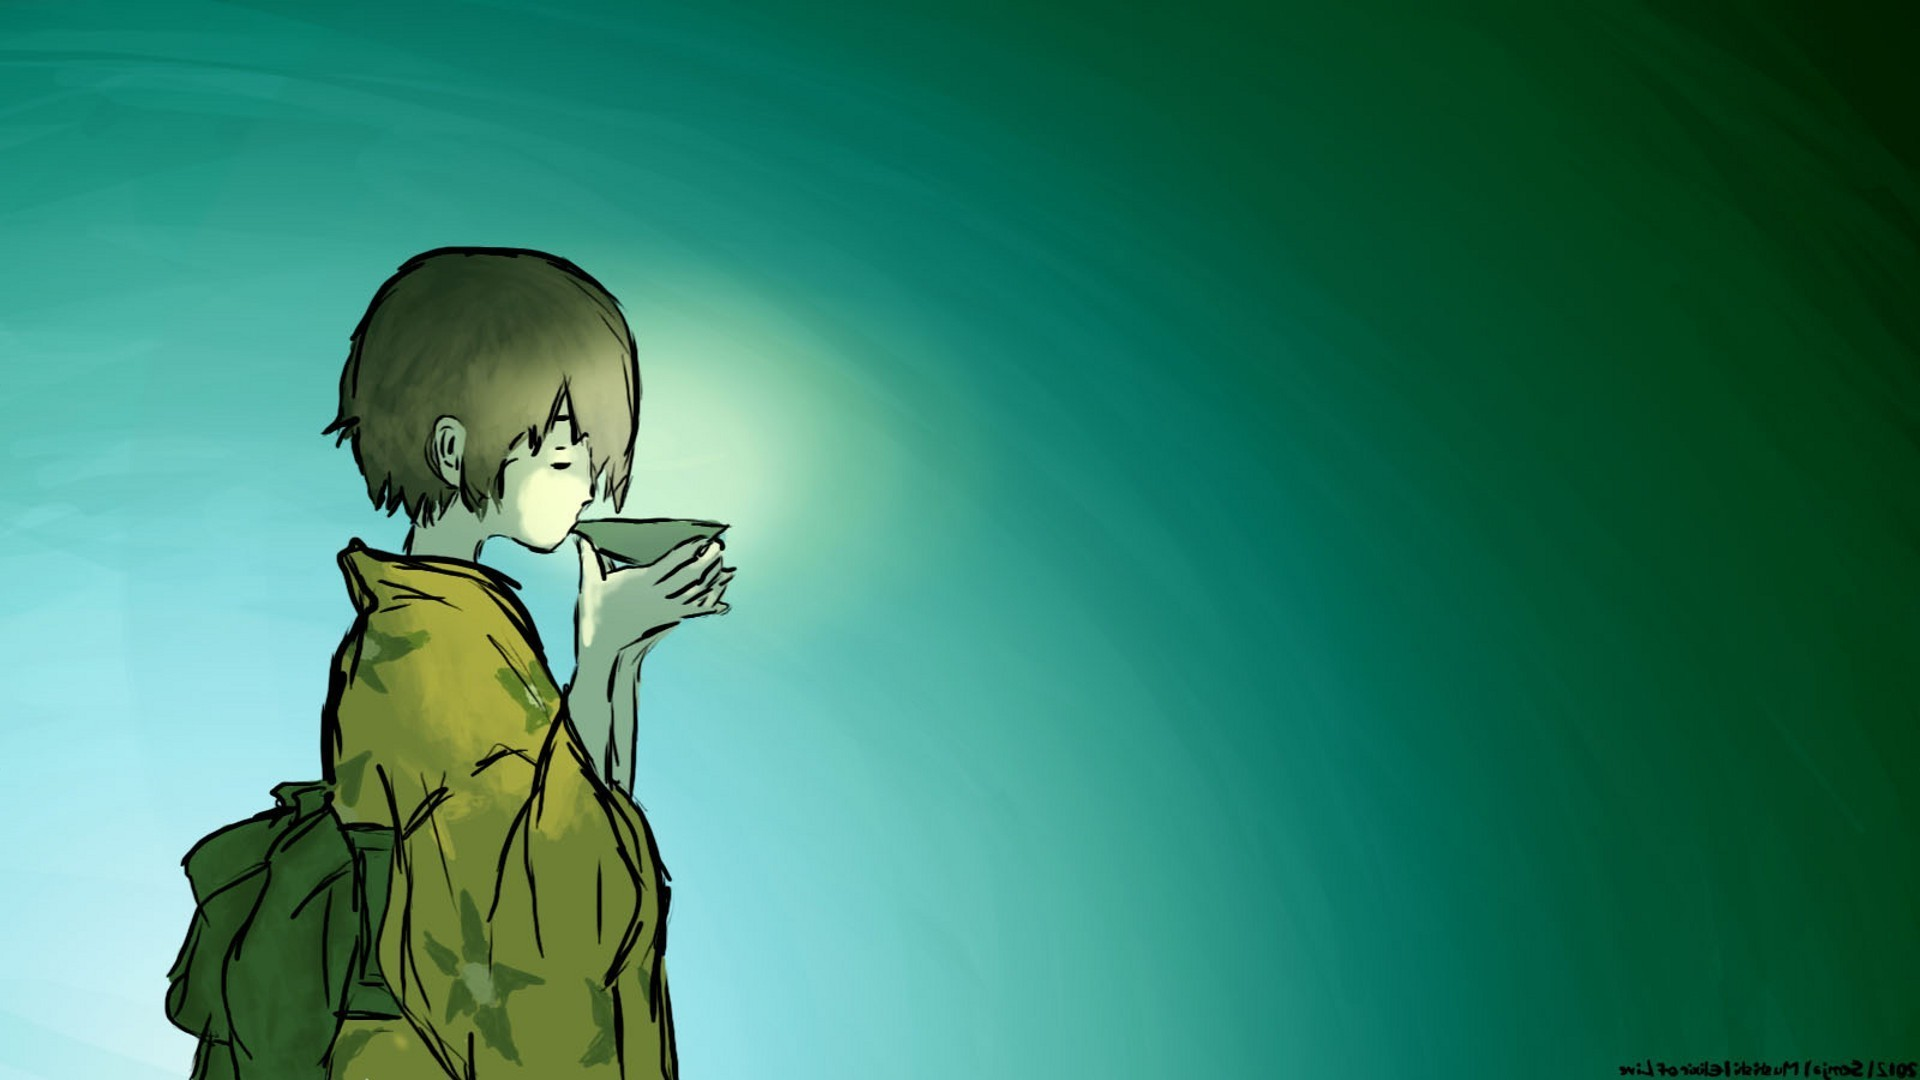 Res: 1920x1080, Mushishi Ginko wallpaper